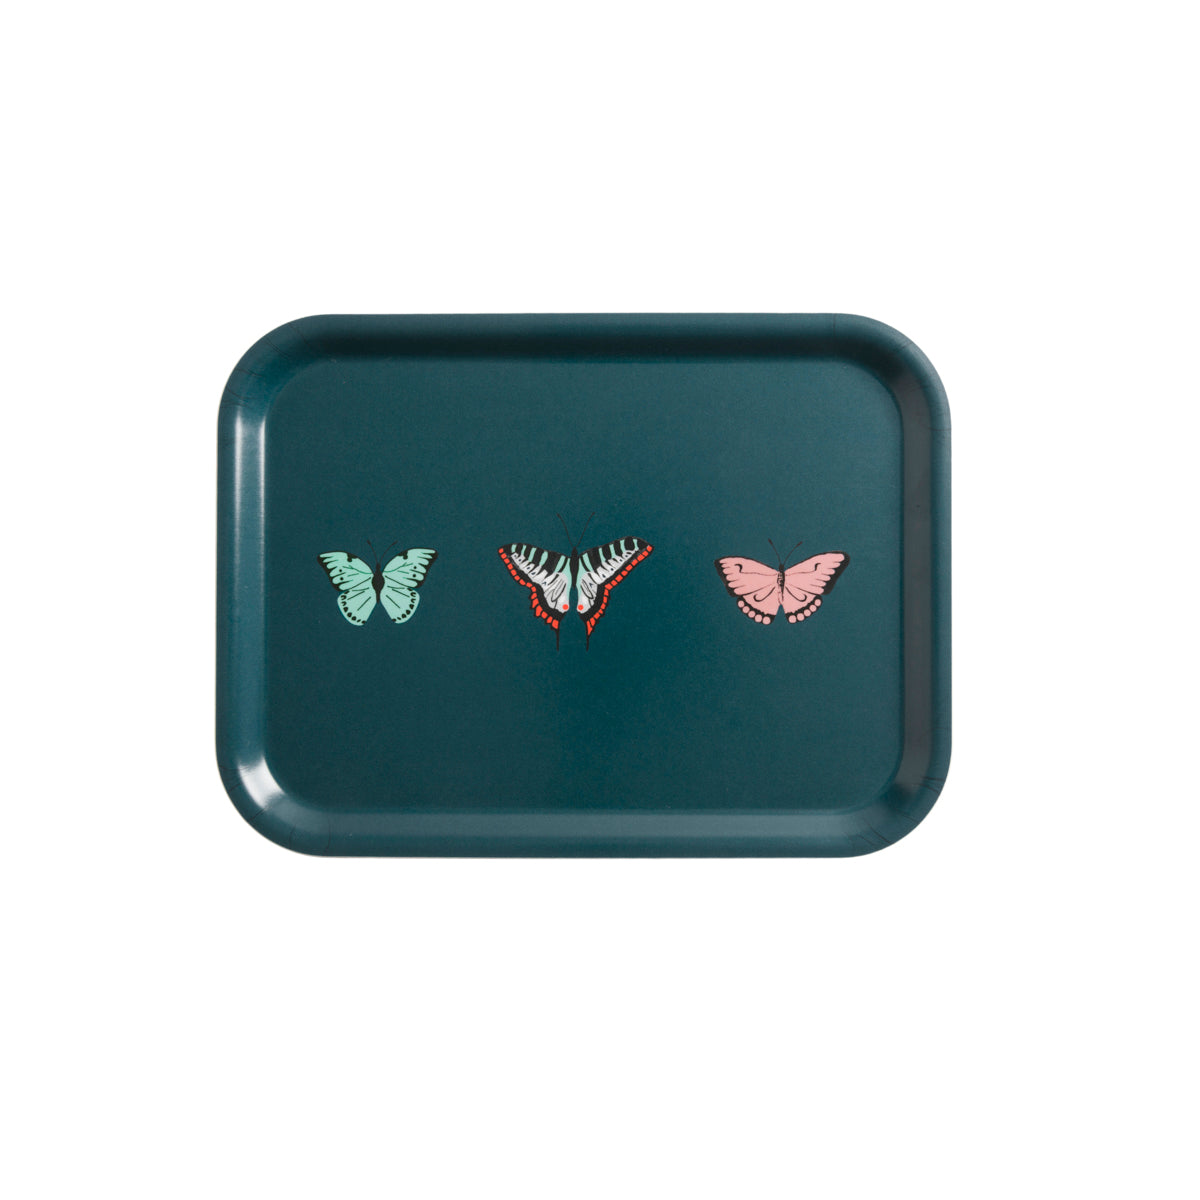 Sophie Allport butterflies printed tray, available in two sizes.